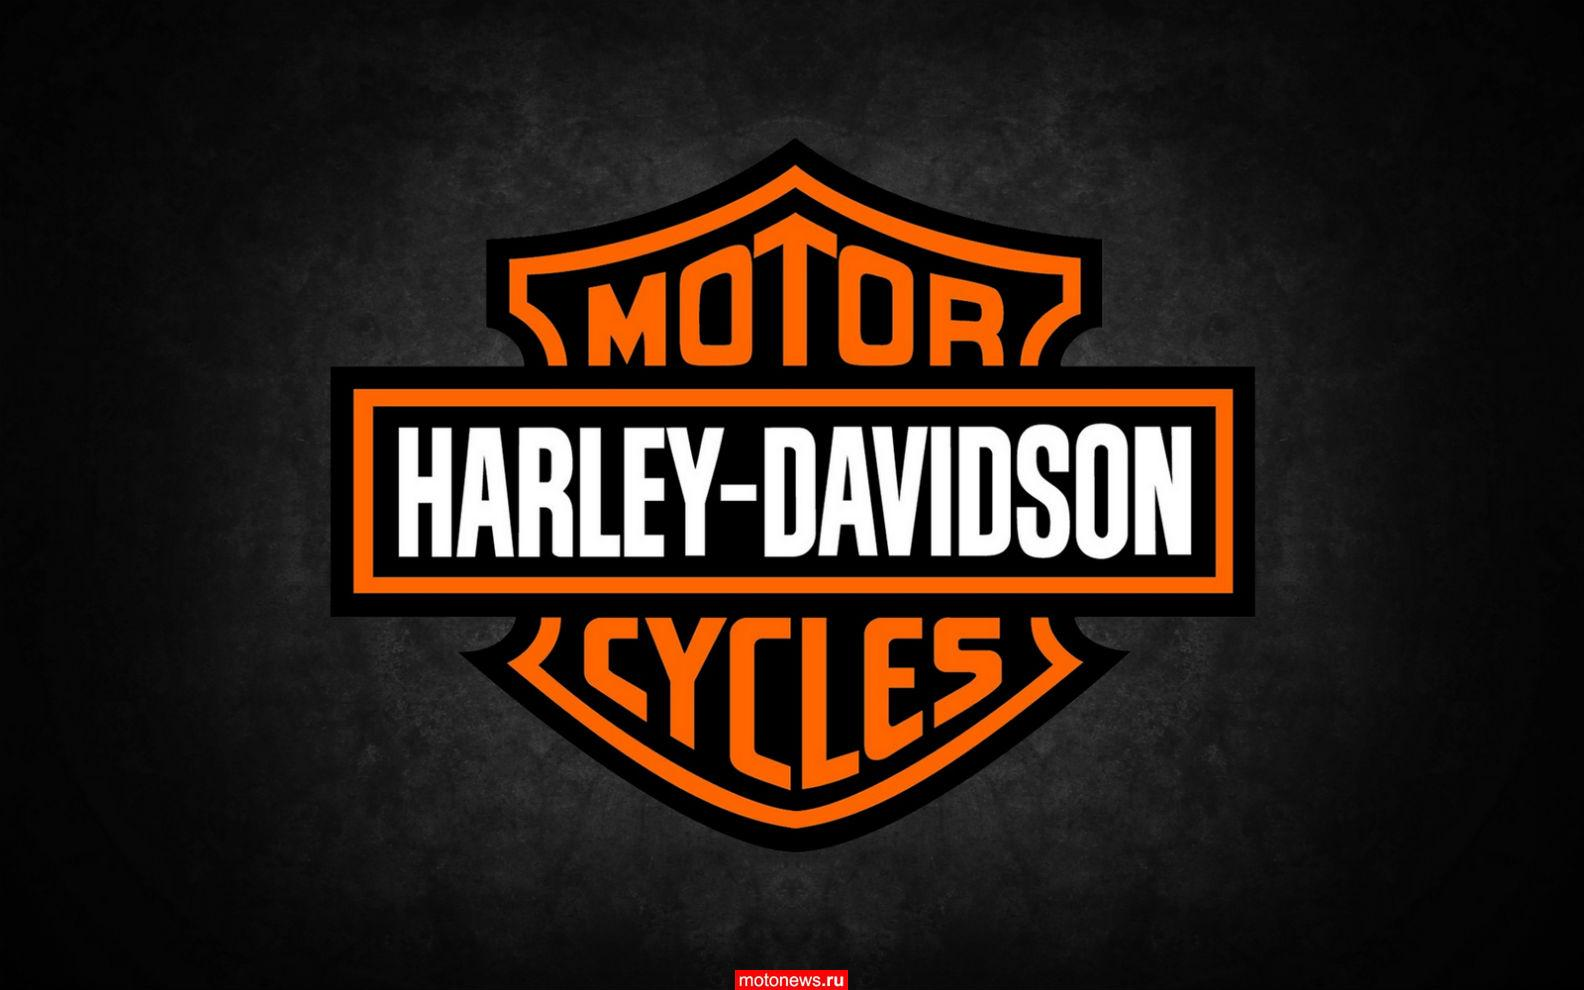 harley davidson Harley davidson discussion forum and news for owners and enthusiasts of harley-davidson motorcycles.